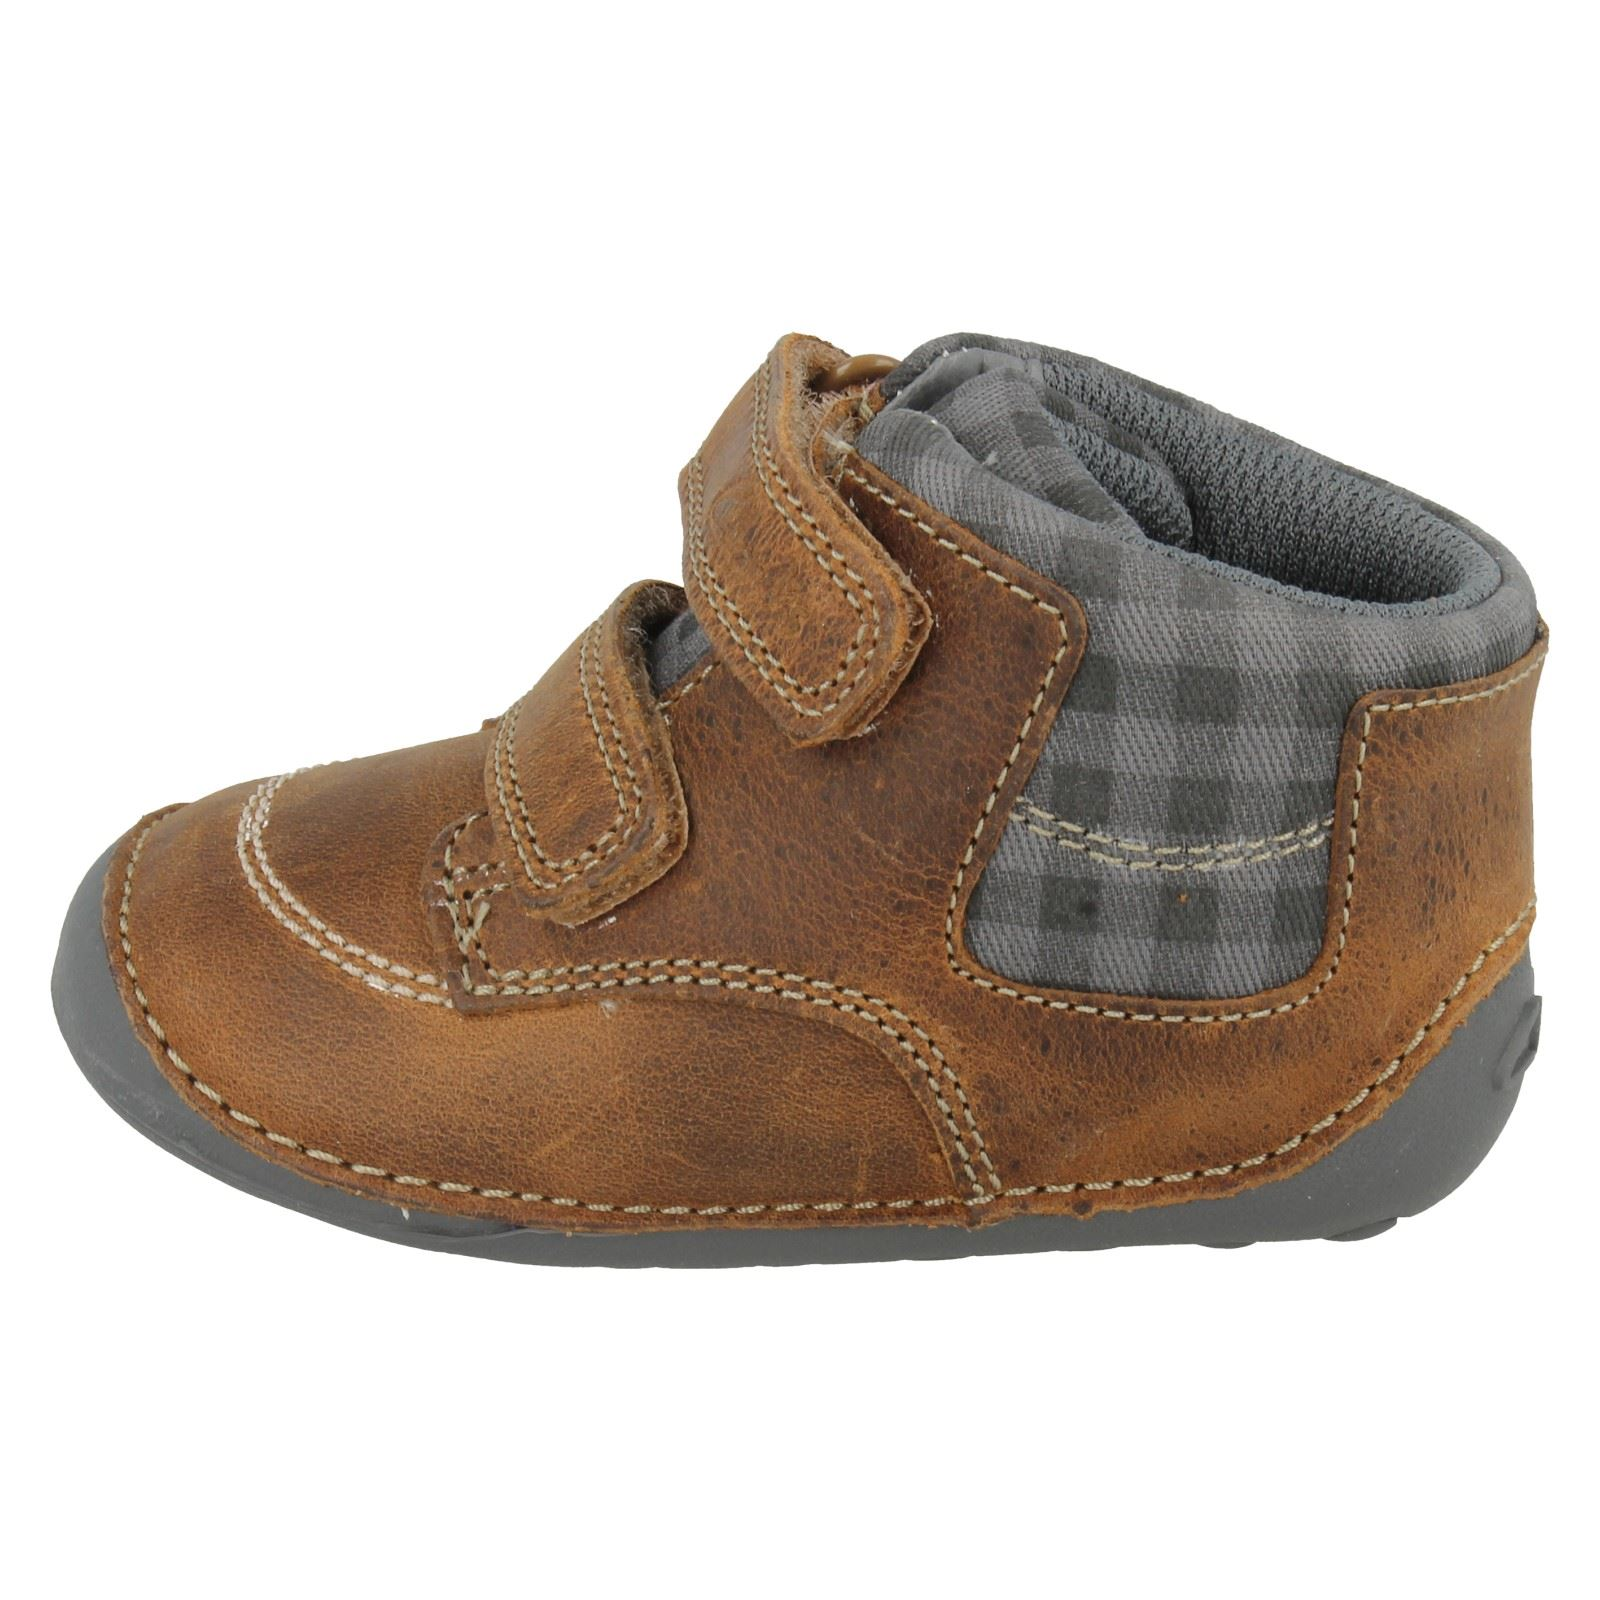 Boys Clarks First Shoes Ankle Boots Style - Tiny Jay